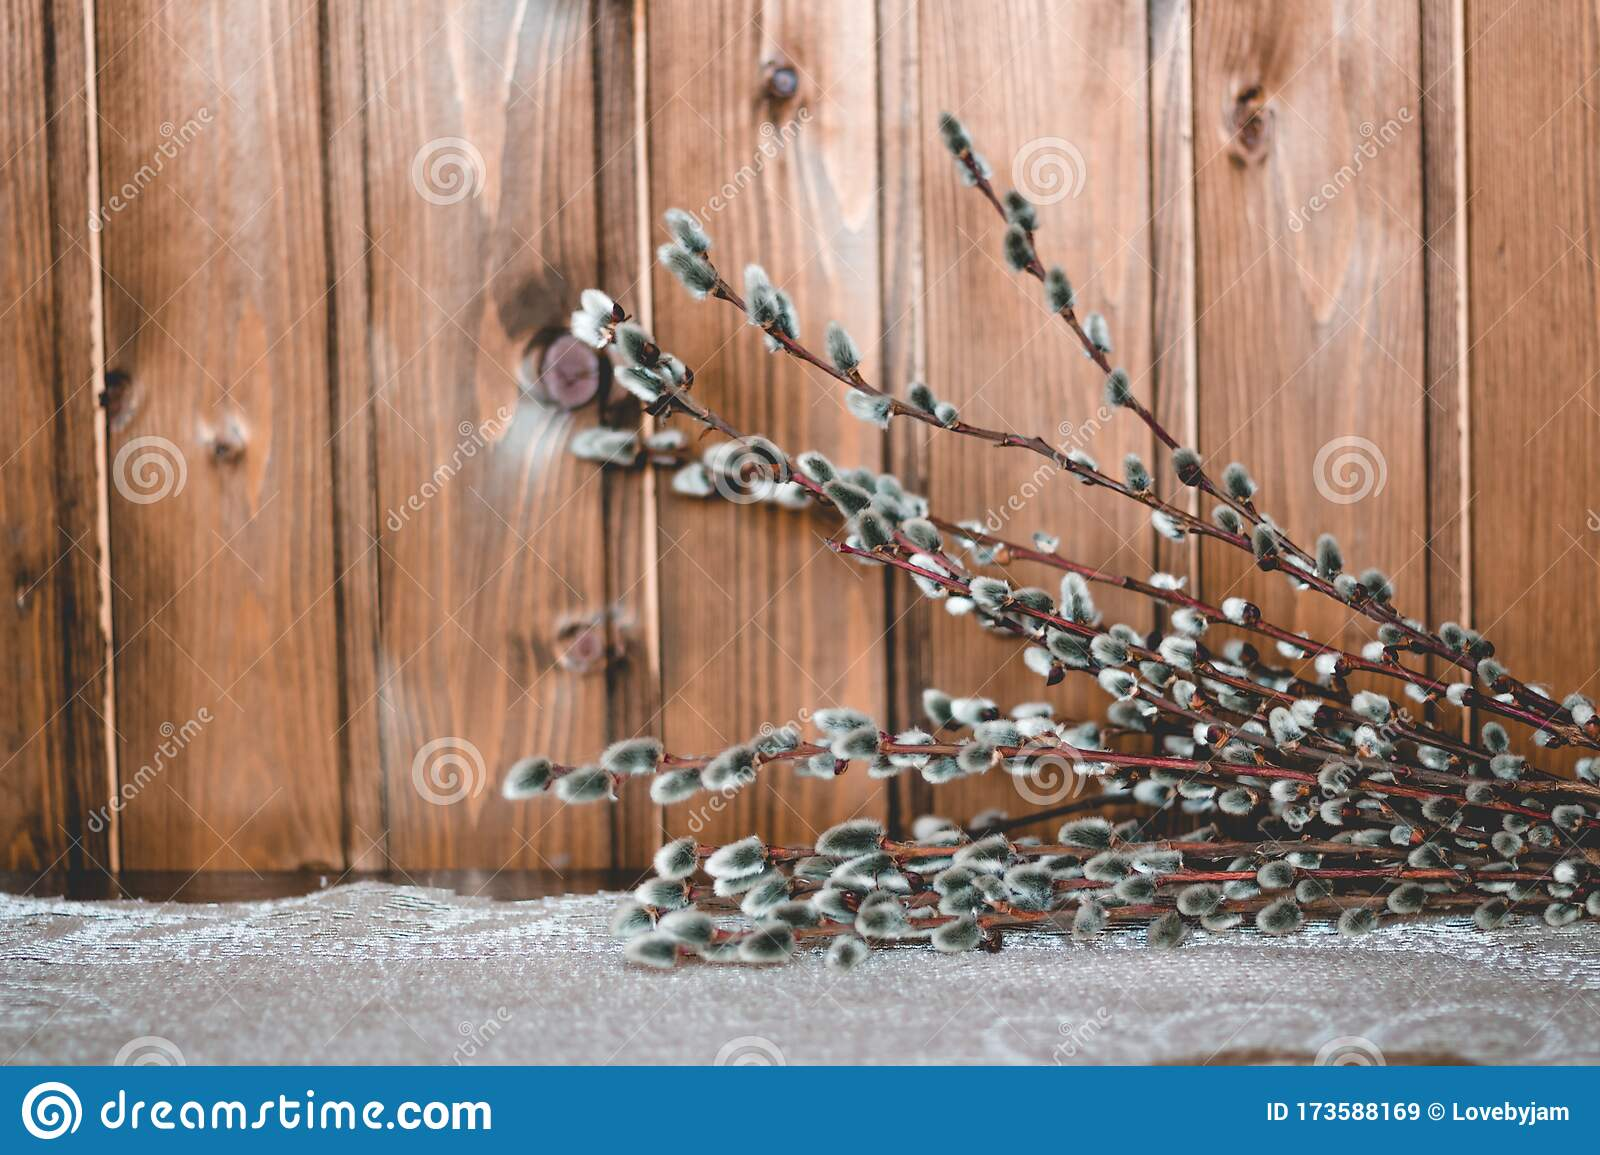 Cute Willow Branches On Wooden Table Flat Lay View Hello Spring Concept Tree Branch Close Up Stock Image Image Of Easter Branches 173588169